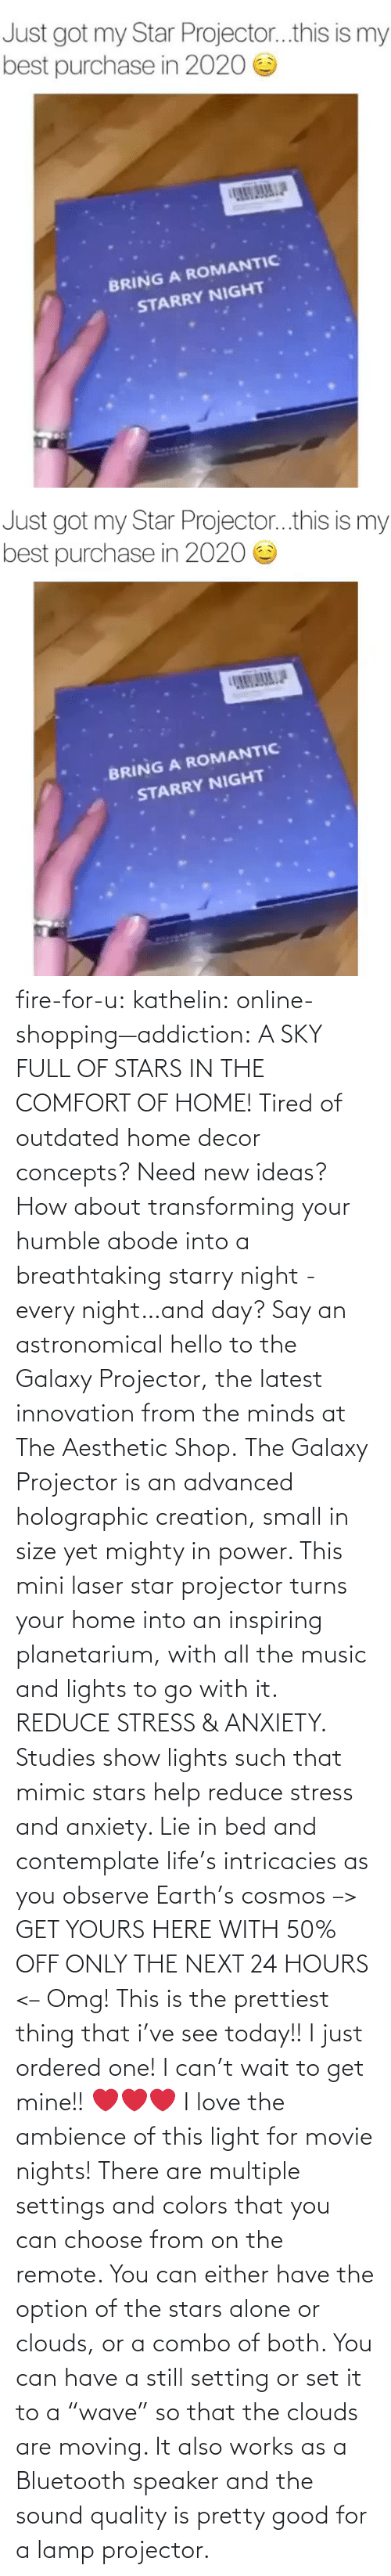 "Movie: fire-for-u:  kathelin: online-shopping—addiction:  A SKY FULL OF STARS IN THE COMFORT OF HOME! Tired of outdated home decor concepts? Need new ideas? How about transforming your humble abode into a breathtaking starry night - every night…and day? Say an astronomical hello to the Galaxy Projector, the latest innovation from the minds at The Aesthetic Shop. The Galaxy Projector is an advanced holographic creation, small in size yet mighty in power. This mini laser star projector turns your home into an inspiring planetarium, with all the music and lights to go with it. REDUCE STRESS & ANXIETY. Studies show lights such that mimic stars help reduce stress and anxiety. Lie in bed and contemplate life's intricacies as you observe Earth's cosmos  –> GET YOURS HERE WITH 50% OFF ONLY THE NEXT 24 HOURS <–   Omg! This is the prettiest thing that i've see today!! I just ordered one! I can't wait to get mine!! ❤️️❤️️❤️️  I love the ambience of this light for movie nights! There are multiple settings and colors that you can choose from on the remote. You can either have the option of the stars alone or clouds, or a combo of both. You can have a still setting or set it to a ""wave"" so that the clouds are moving. It also works as a Bluetooth speaker and the sound quality is pretty good for a lamp projector."